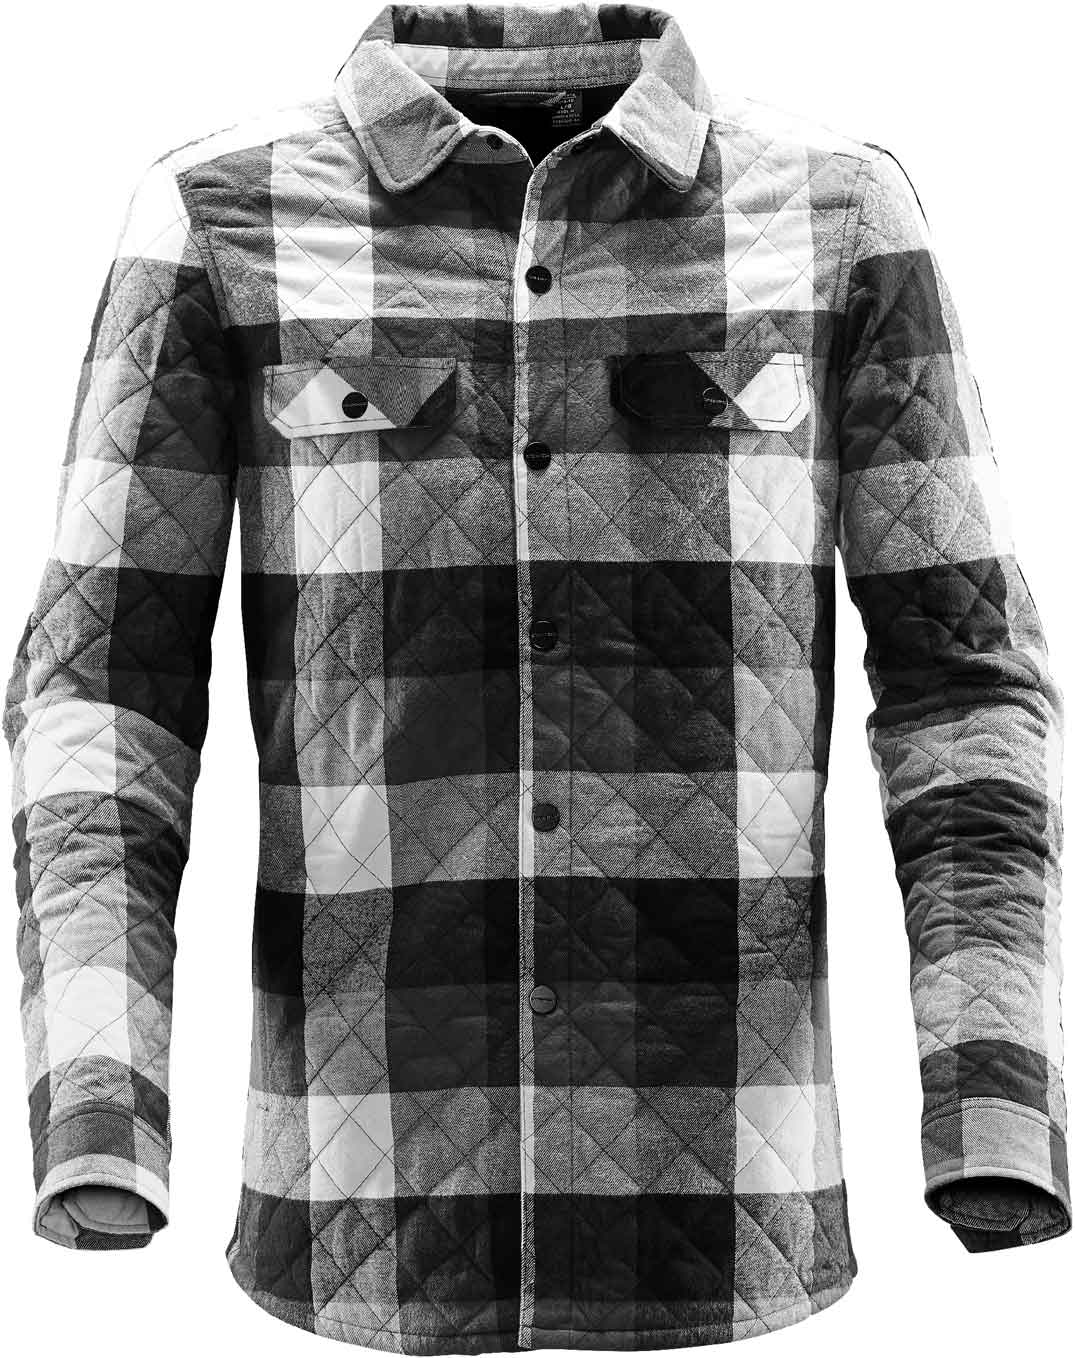 MEN'S NORTH BEACH PLAID SHACKET